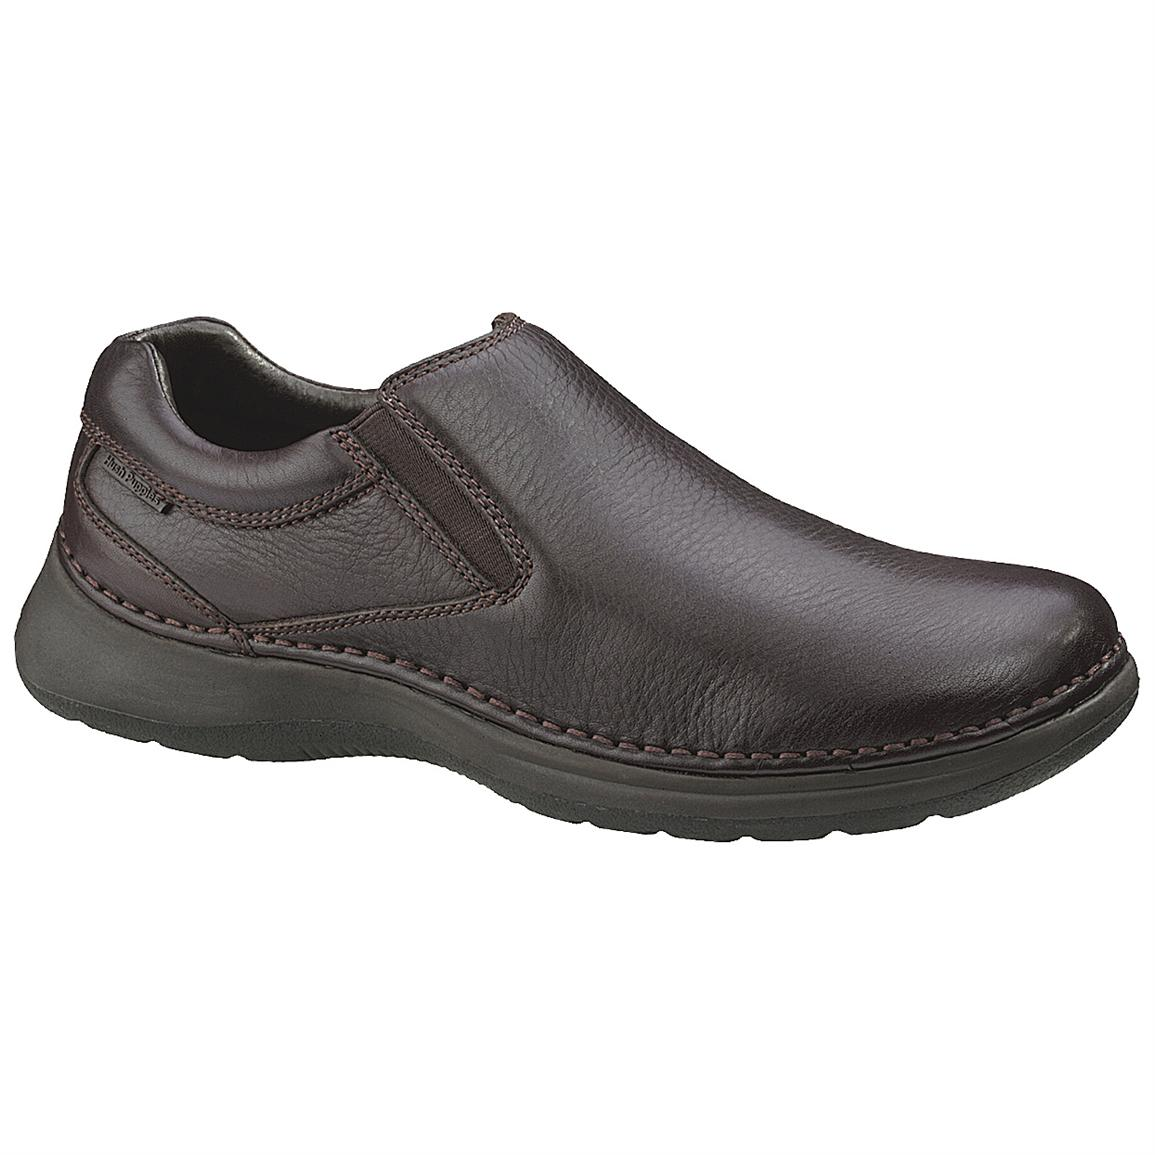 Men's Hush Puppies® Lunar II Shoes, Dark Brown